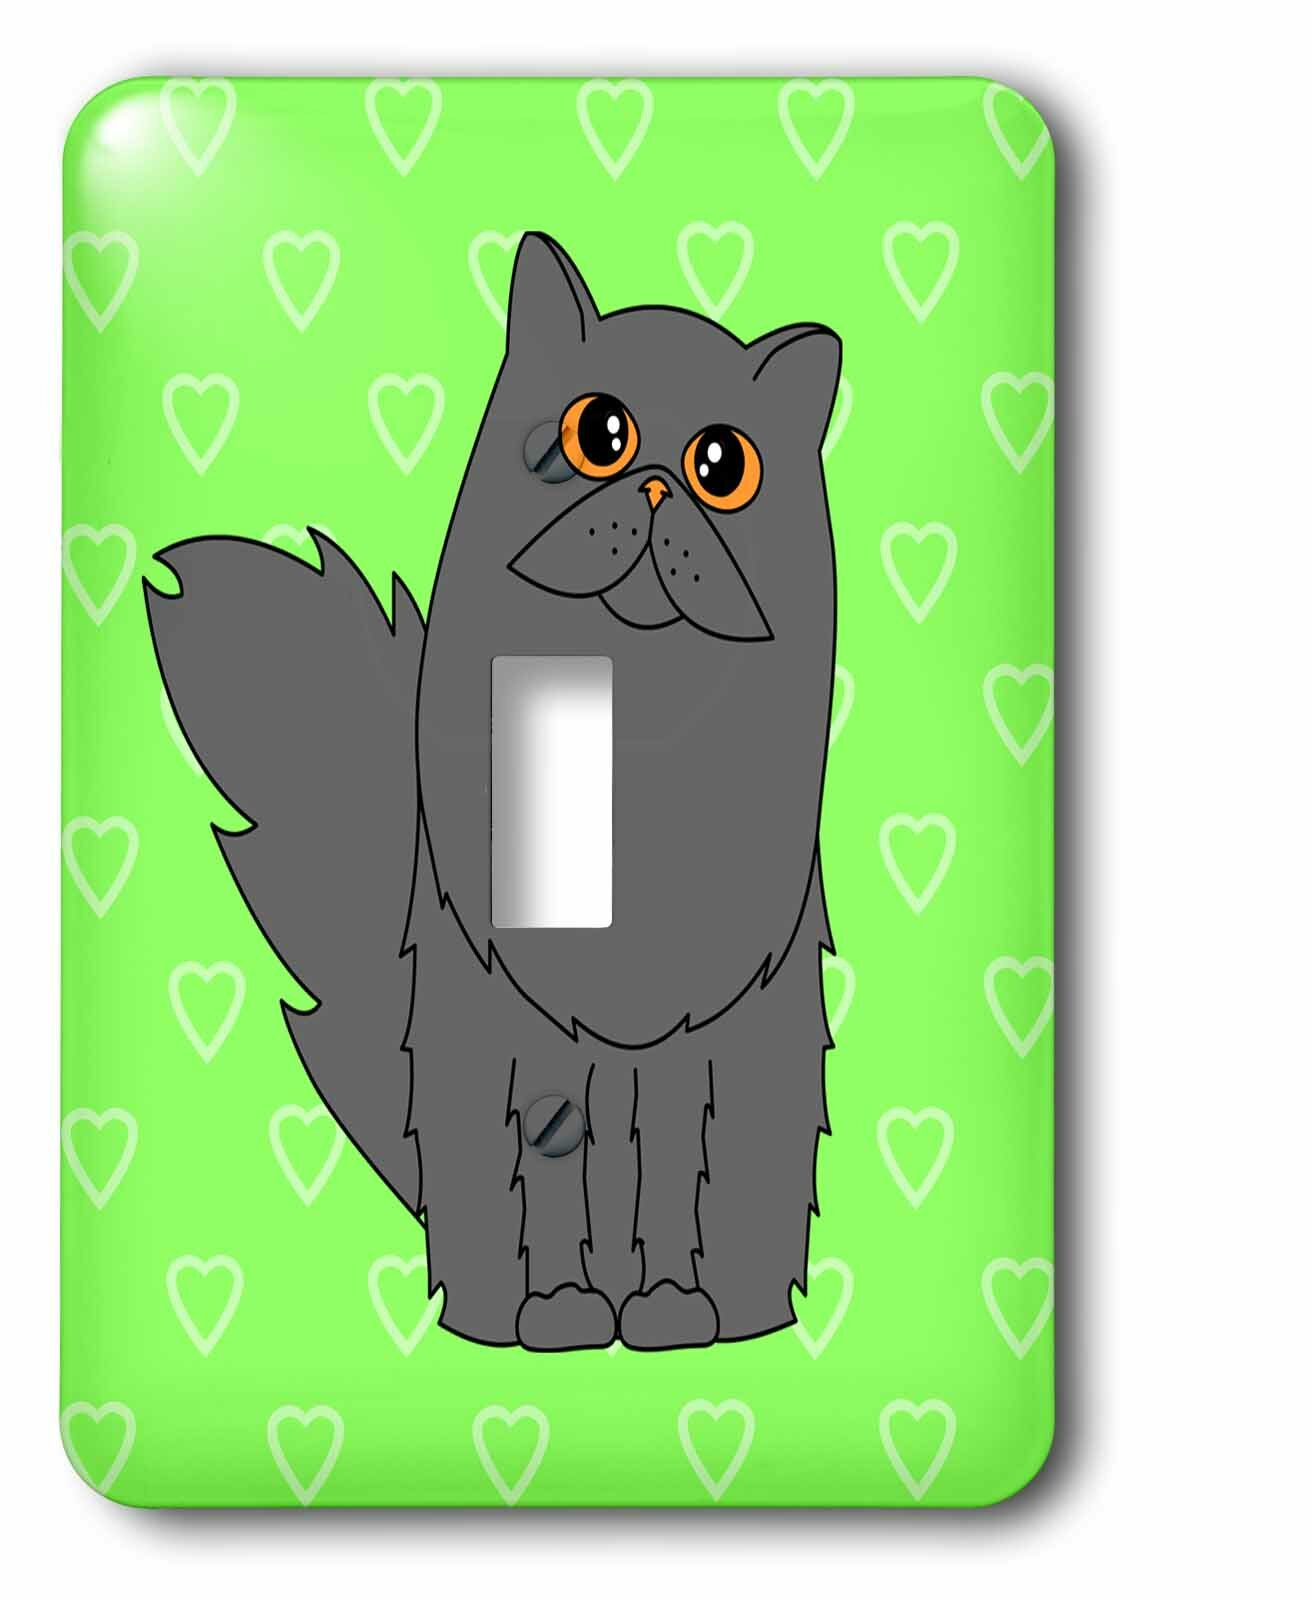 3drose Long Haired Persian Cat Hearts 1 Gang Toggle Light Switch Wall Plate Wayfair